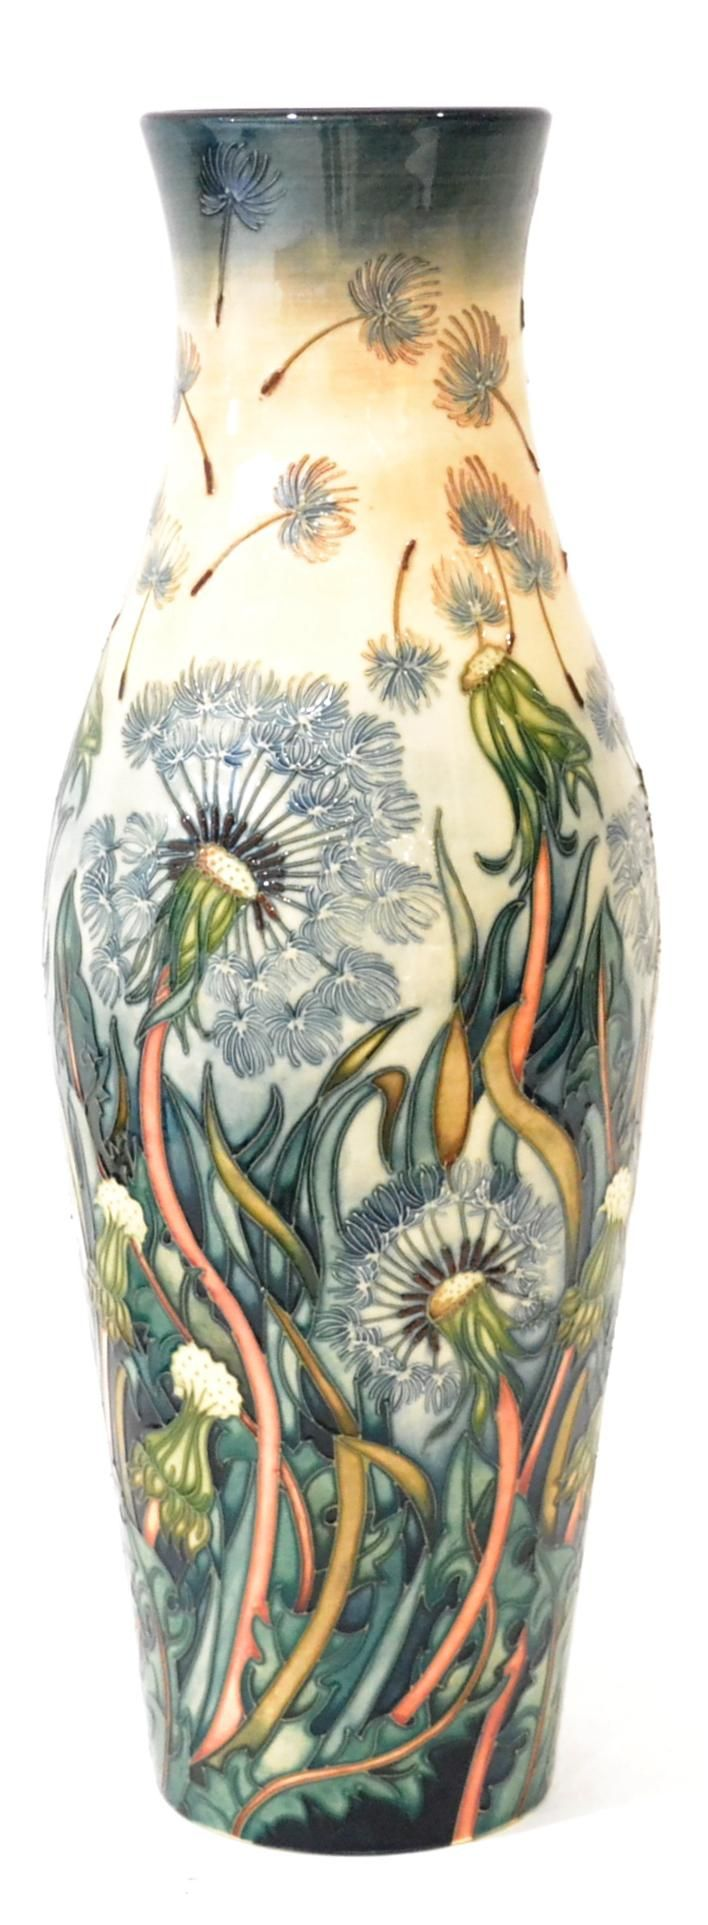 Tennants Auctioneers: A Modern Moorcroft Destiny Pattern Vase